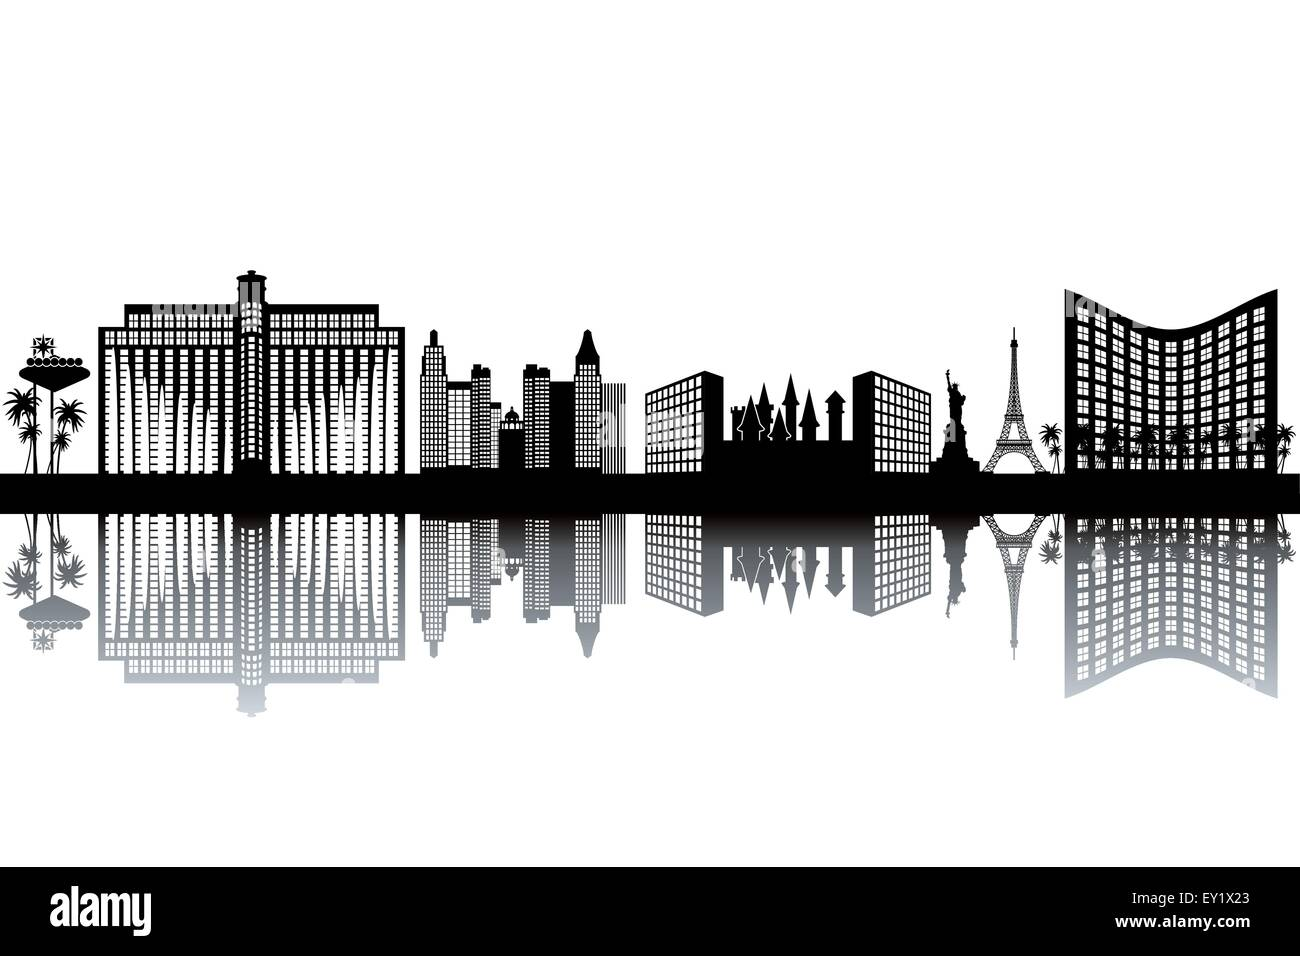 Las Vegas skyline - black and white vector illustration - Stock Vector